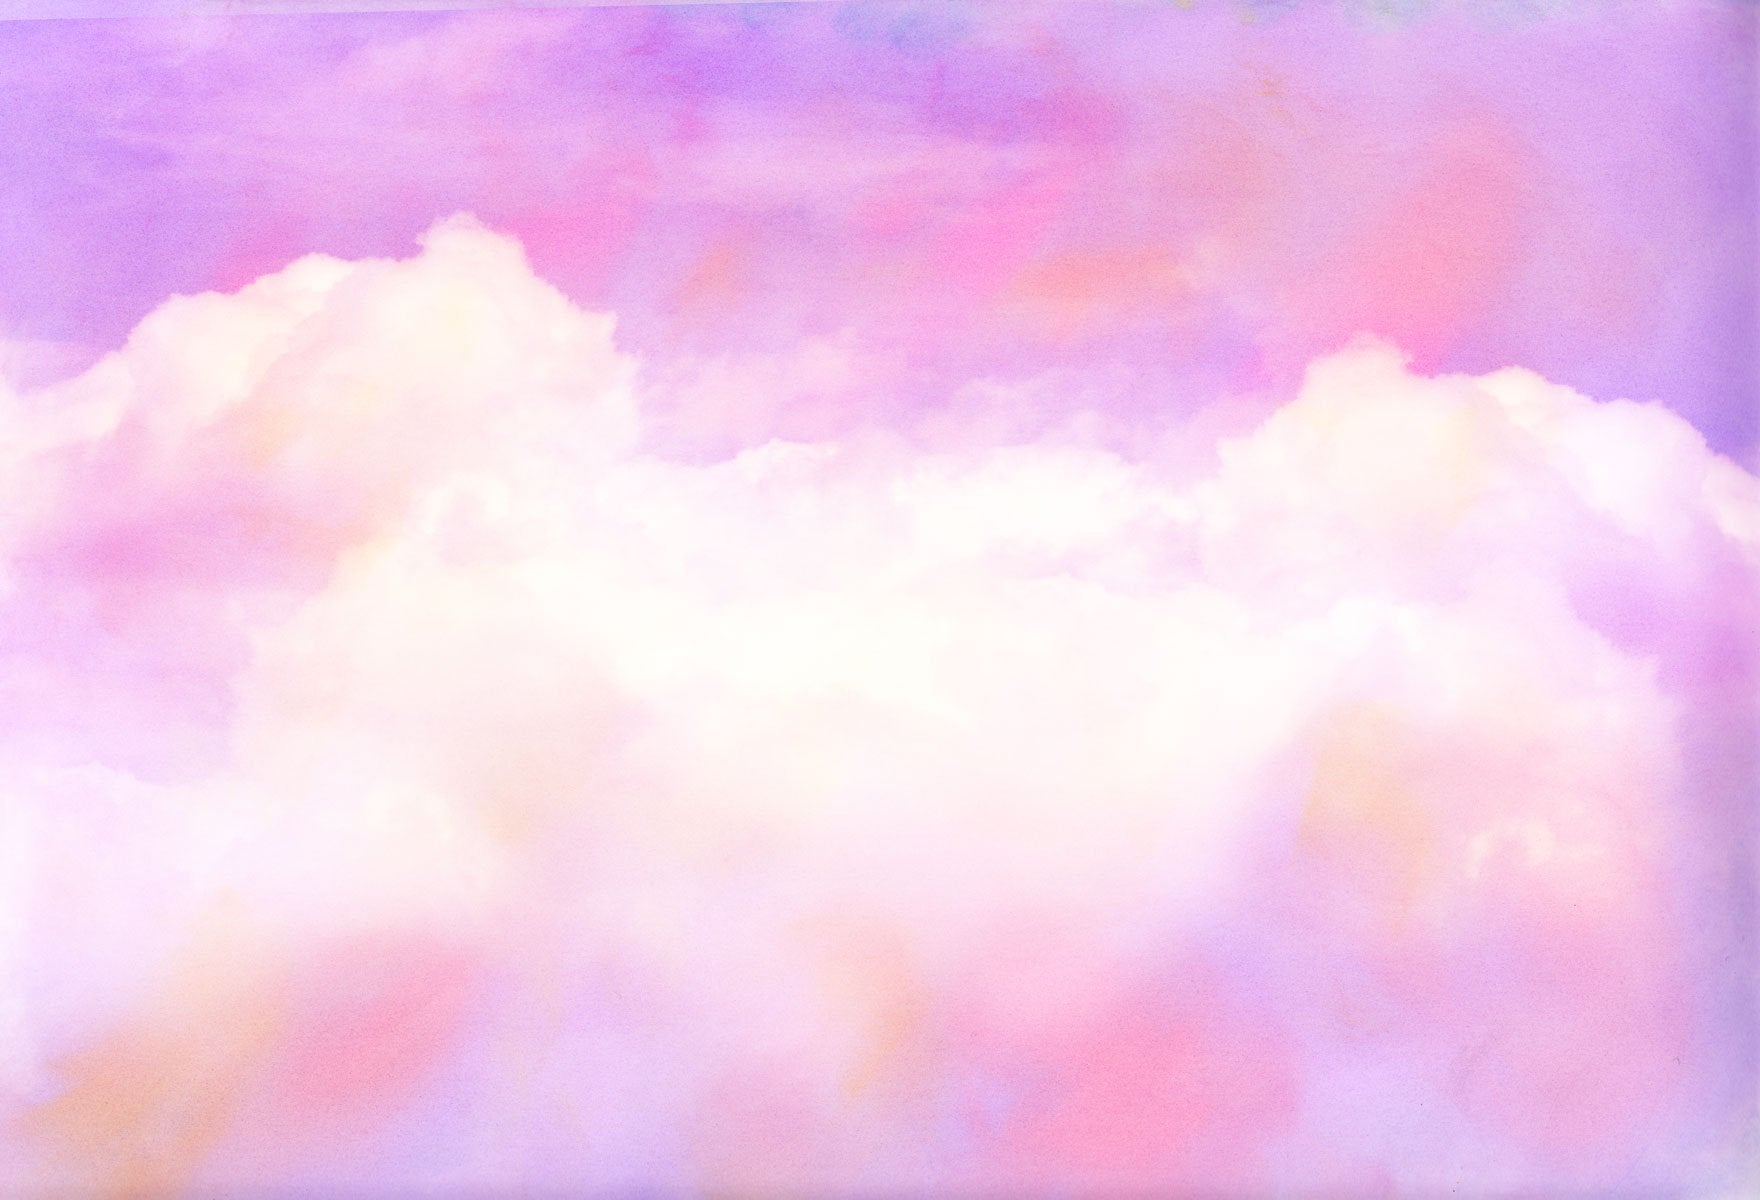 Load image into Gallery viewer, Kate Baby Shower Sunset Melody Clouds Backdrop for Photography Designed by Mini MakeBelieve - Kate backdrops UK